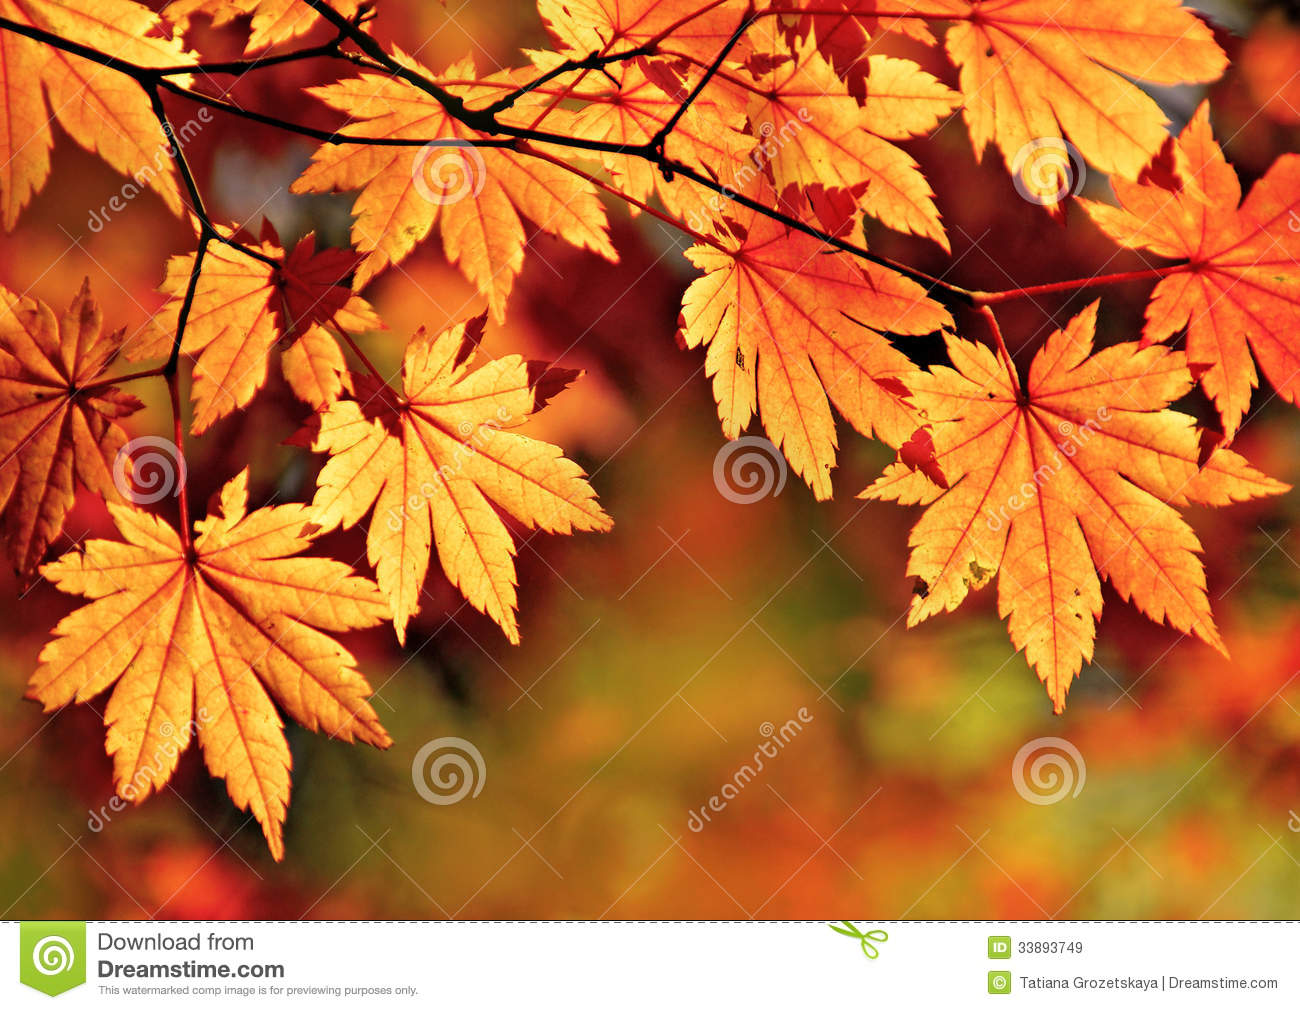 Fall Pumpkin Computer Wallpaper Autumn Maple Leaves Stock Image Image Of Over Wallpaper